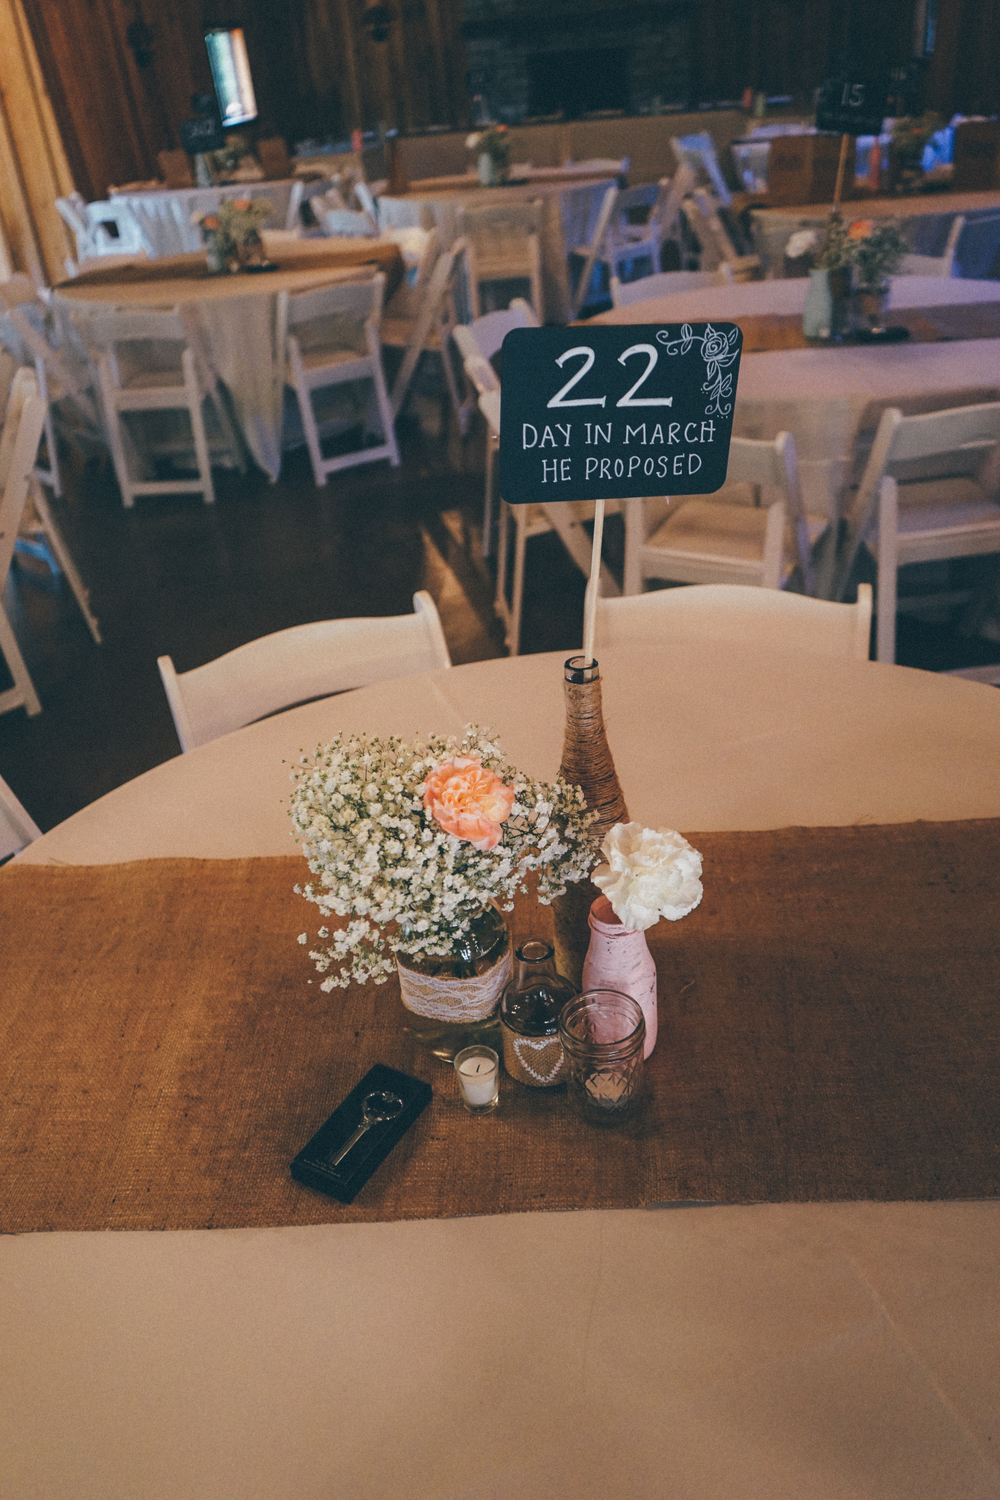 Instead of typical table numbers, we used numbers that meant something to us (like, the address of our first home, the day we started dating, and the day we got engaged). See more unique wedding ideas on the One Weddings Pinterest board:  https://www.pinterest.com/oneweddings1/wedding-ideas/  Photo Credit: Matthew Garsky and Alec Fritz Photography